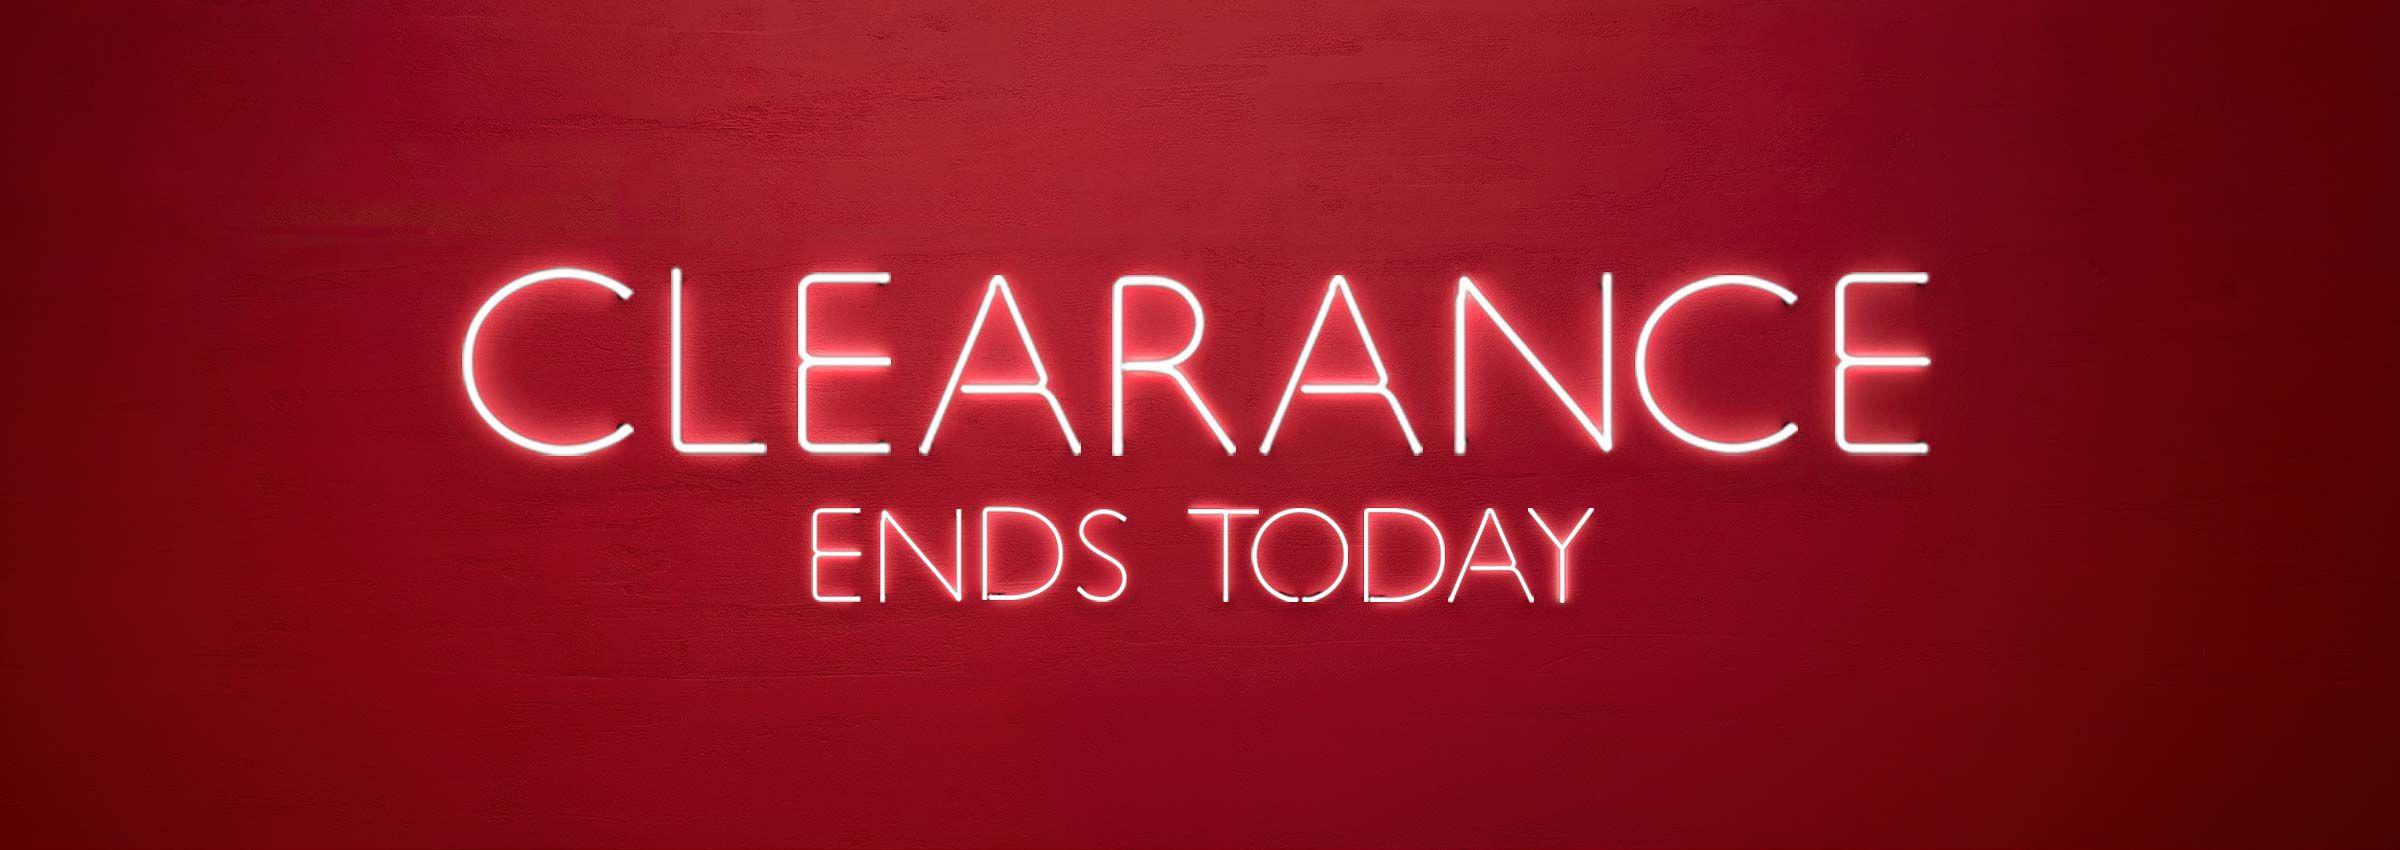 Clearance Ends Sunday